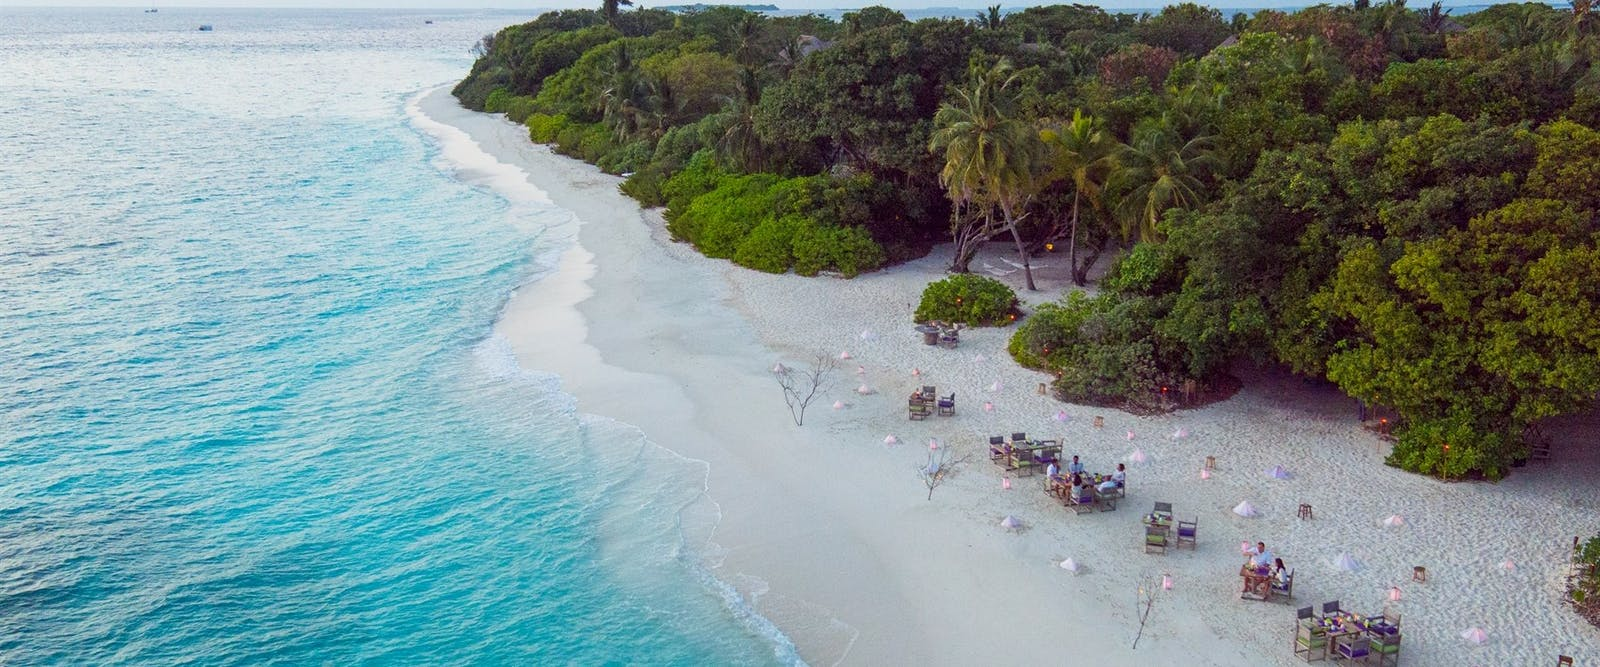 Beach dining at Soneva Fushi, Maldives, Indian Ocean